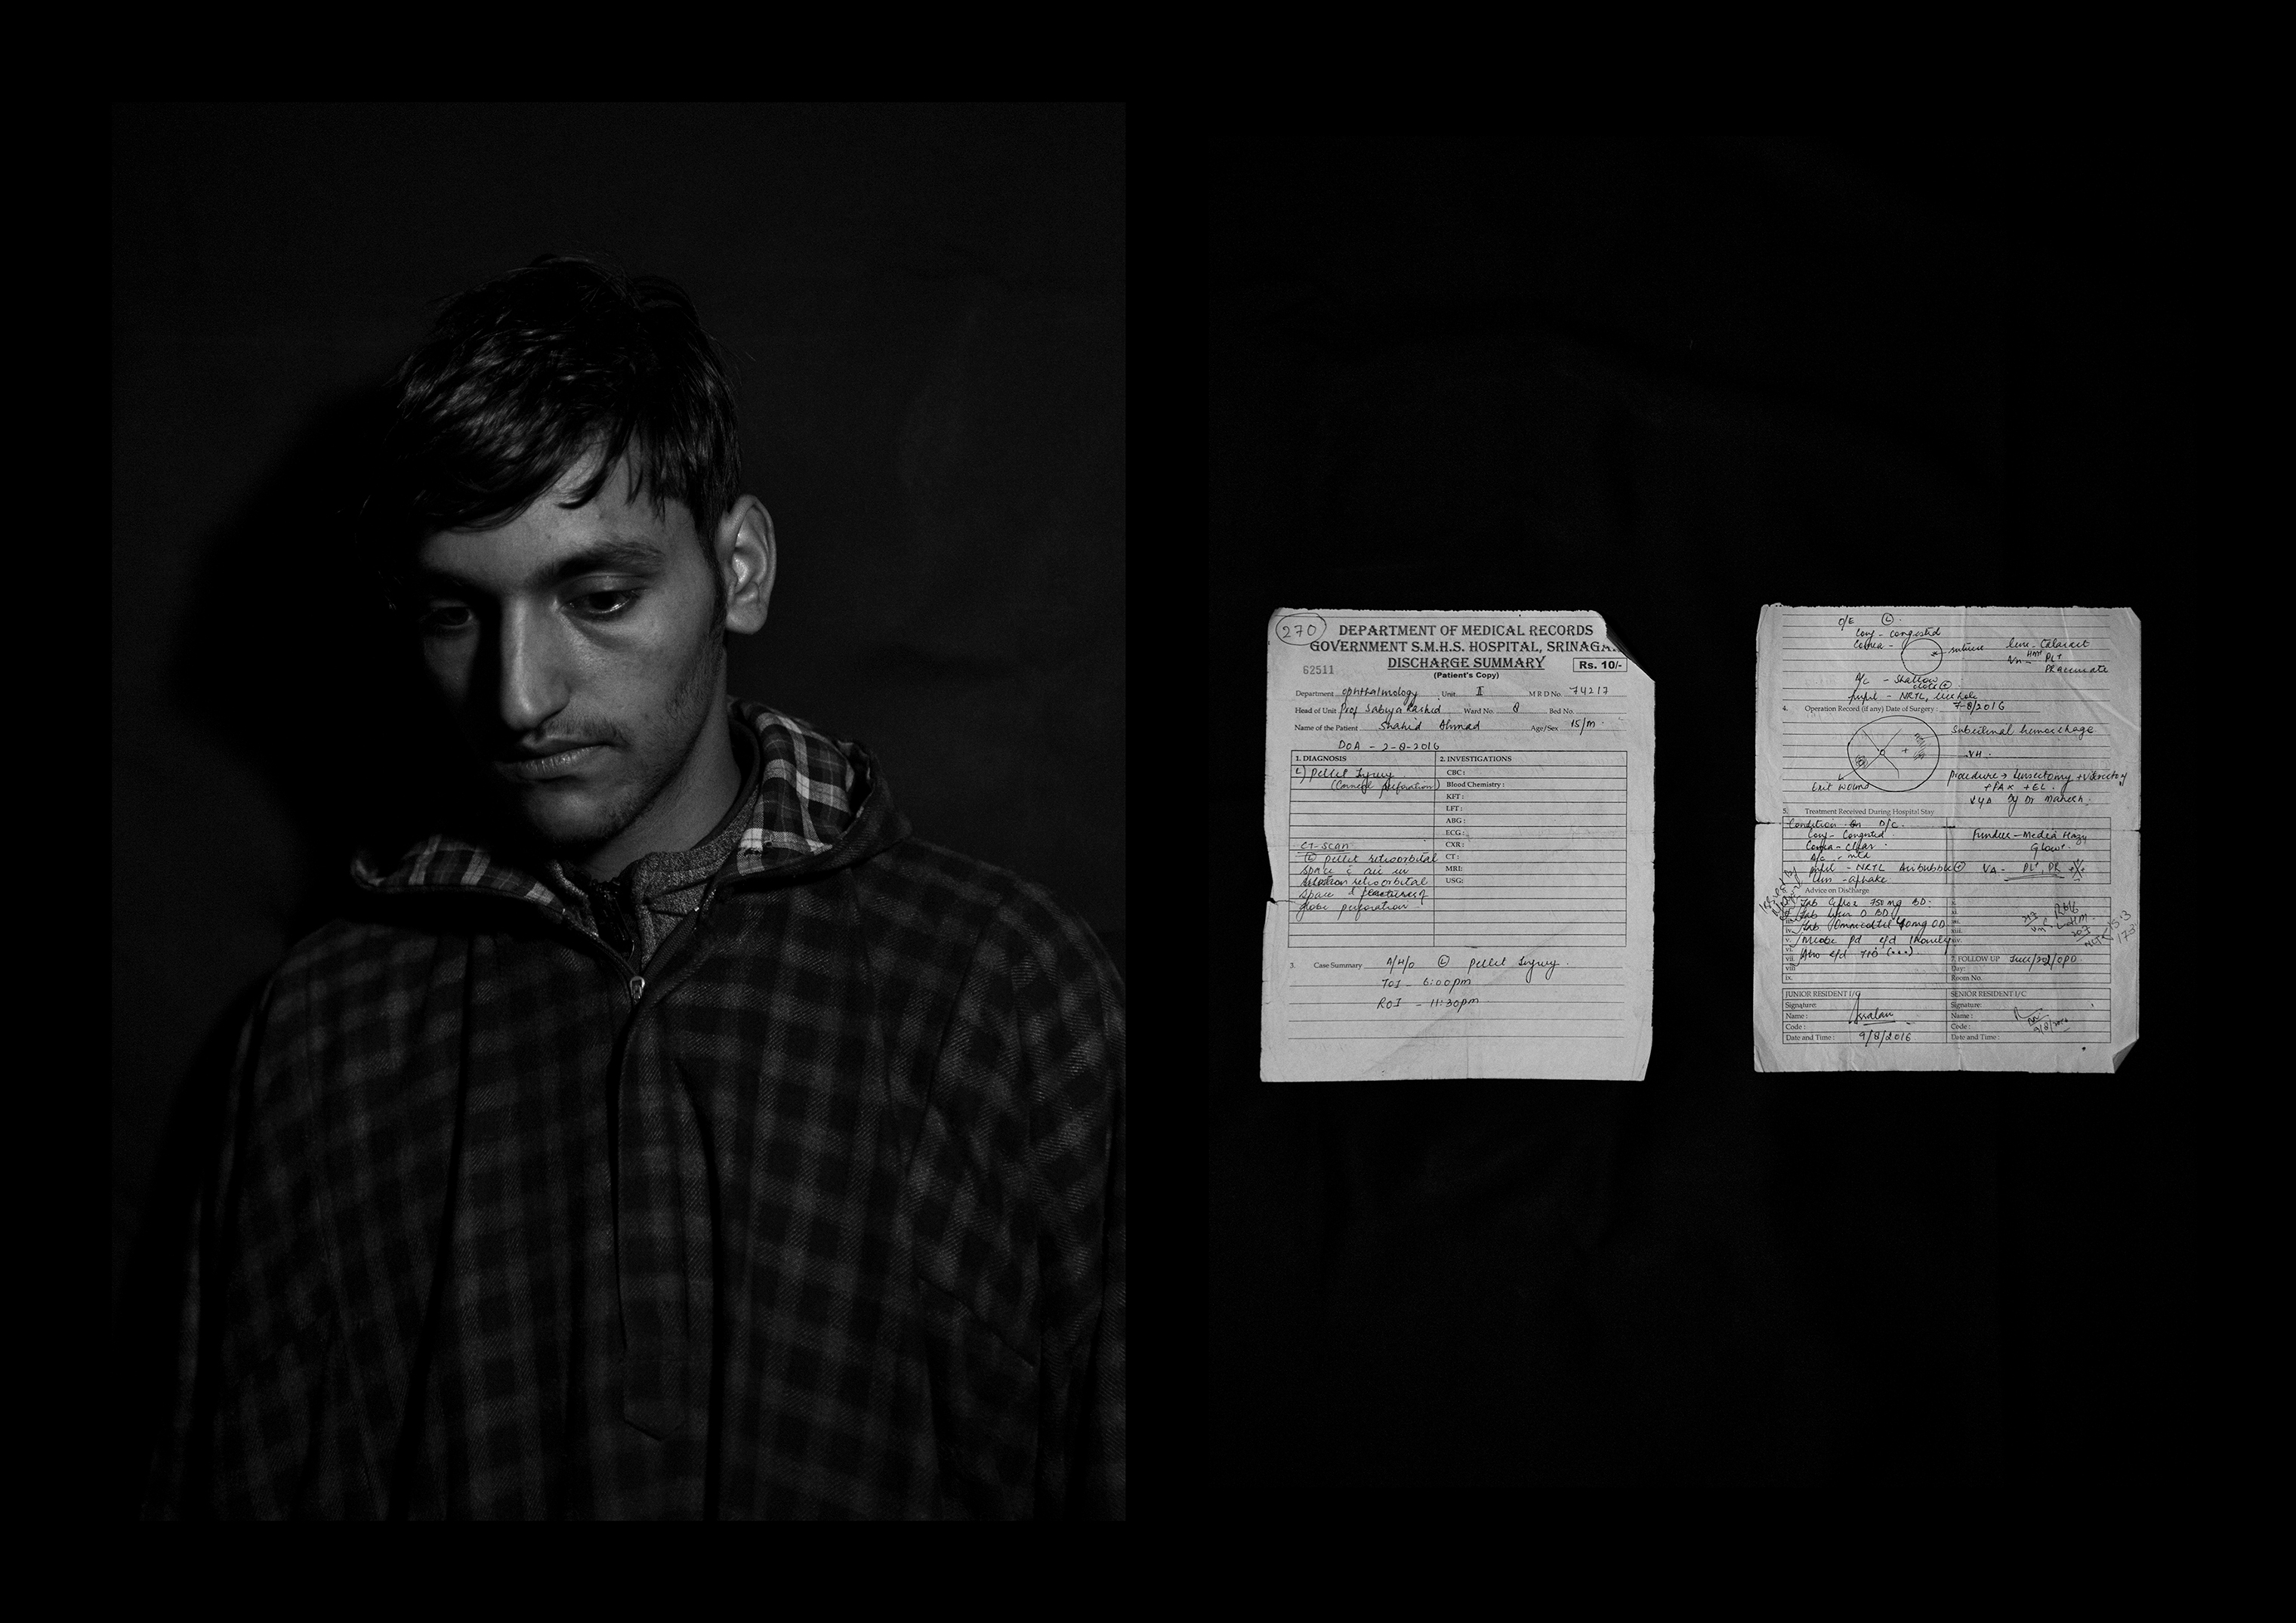 Shahid Ahmad Wani, 16 years old, from Achabal. He was forced to end his studies after being hit by 93 pellets all over his body, with two in the left eye. After three failed surgeries he is now able to only see shadows. To the right of his portrait, his medical records are pictured.